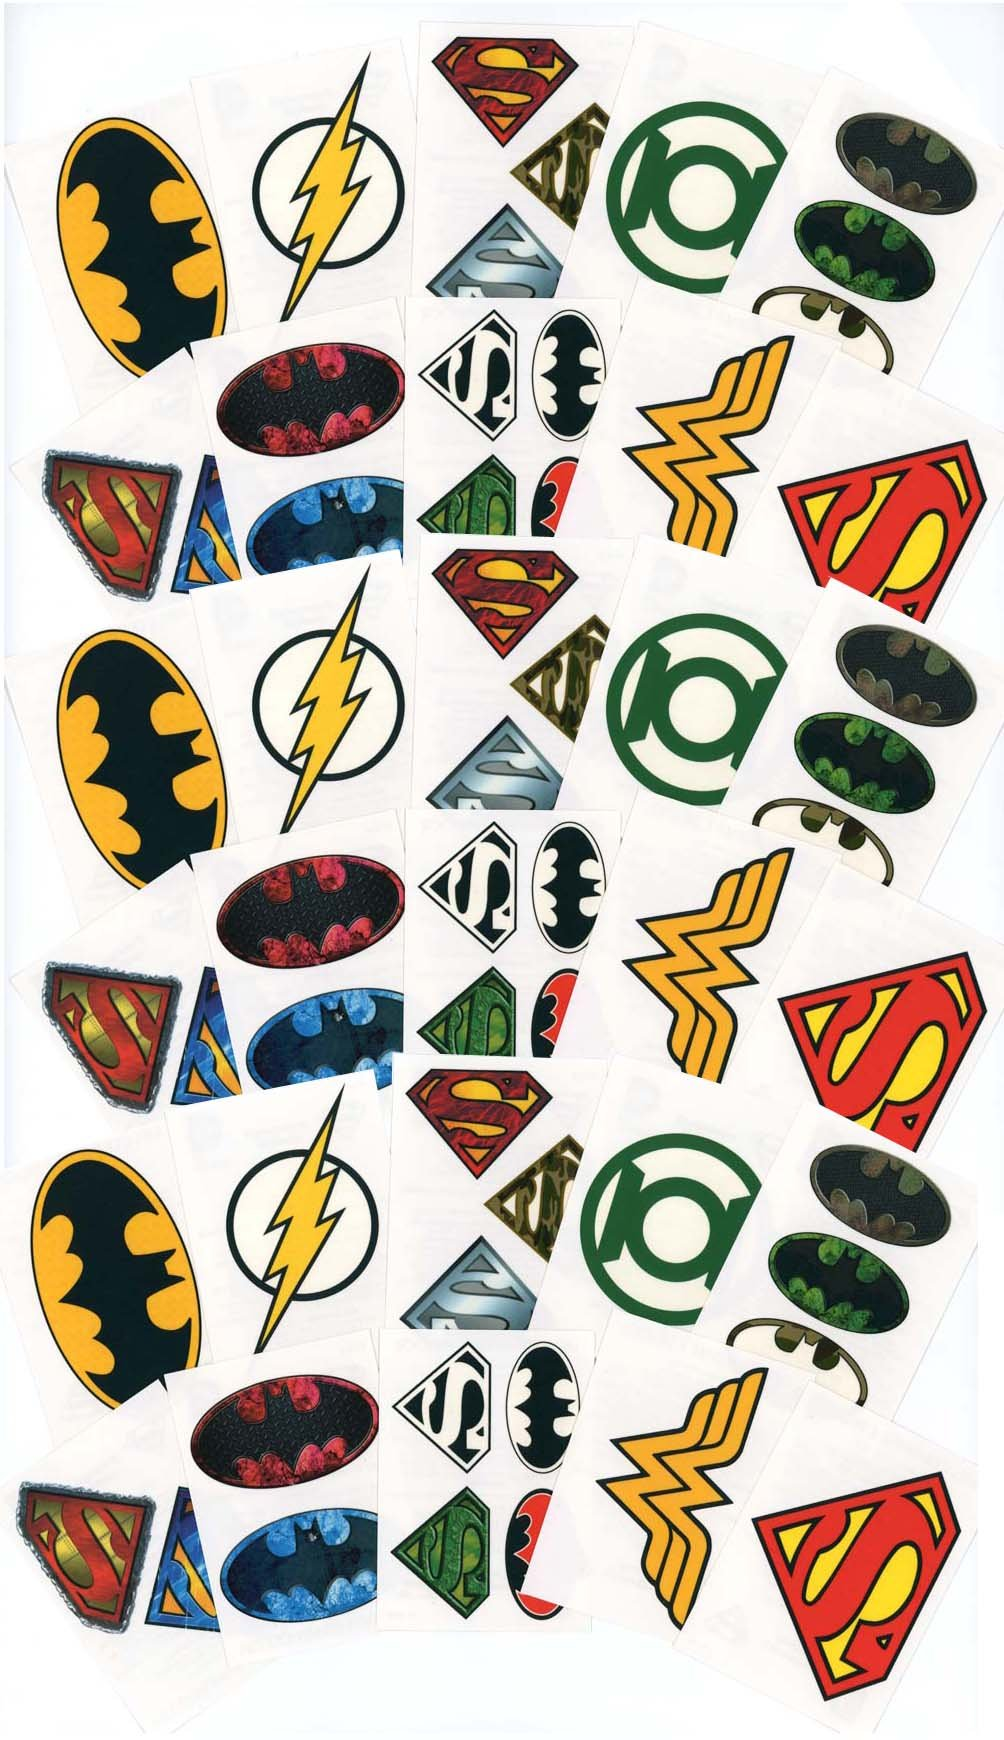 Large DC Comics Logo Temporary Tattoos for Party Favors / Party Activity - 30 Individual Sheets - Featuring Superman, Batman, Wonder Woman, Green Lantern and The Flash